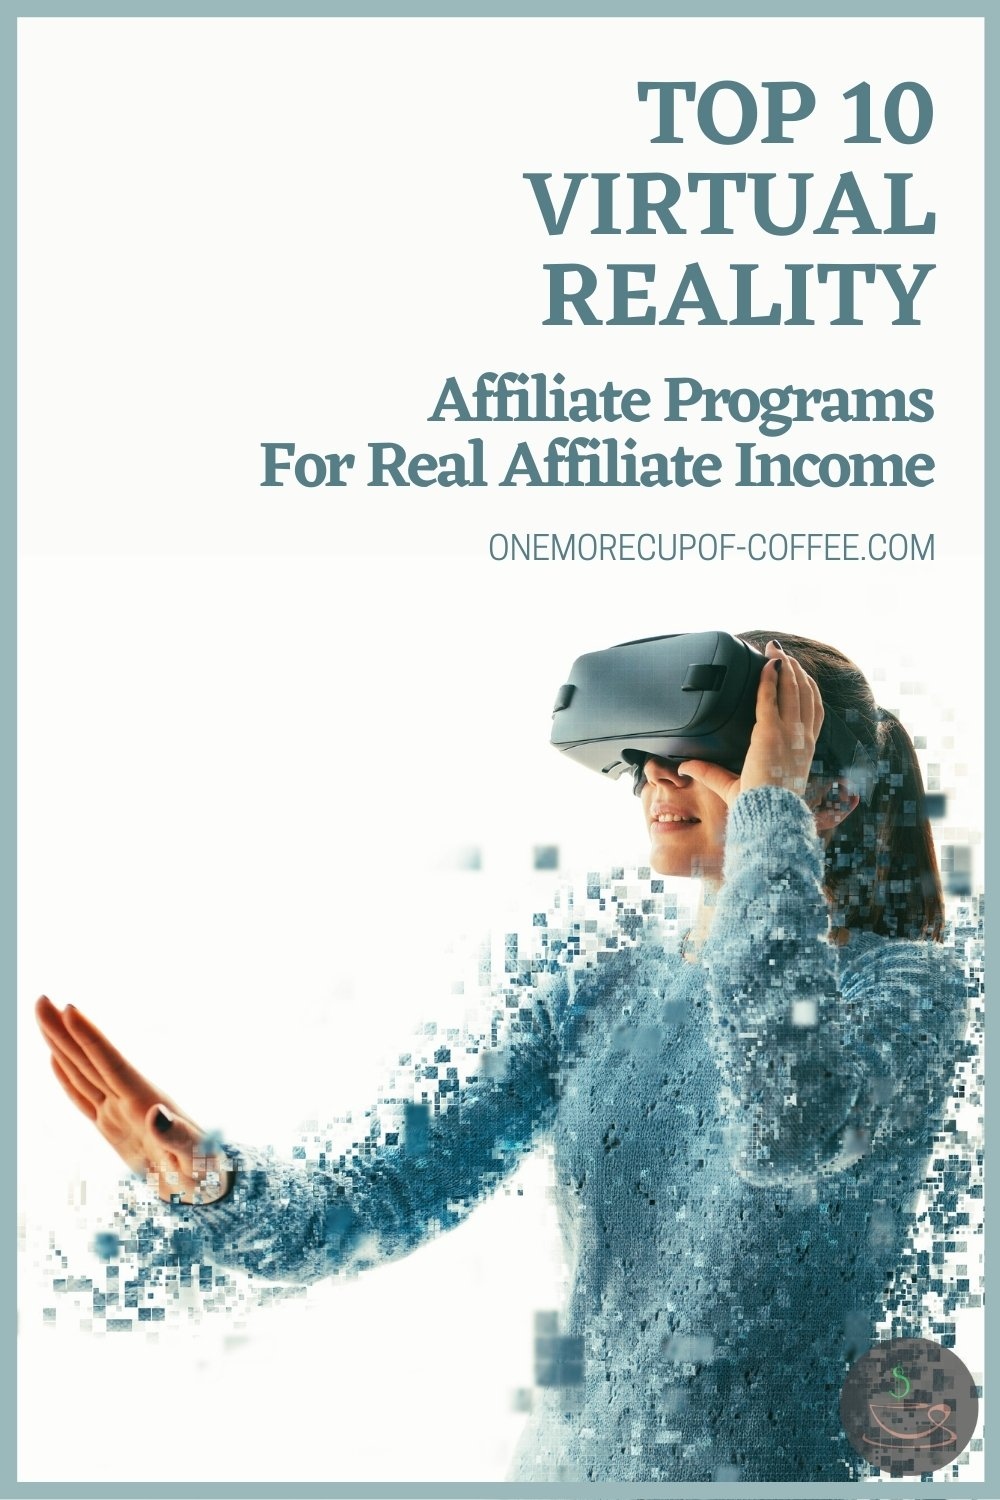 """woman in blue sweater wearing a virtual reality headset; with text overlay """"Top 10 Virtual Reality Affiliate Programs For Real Affiliate Income"""""""